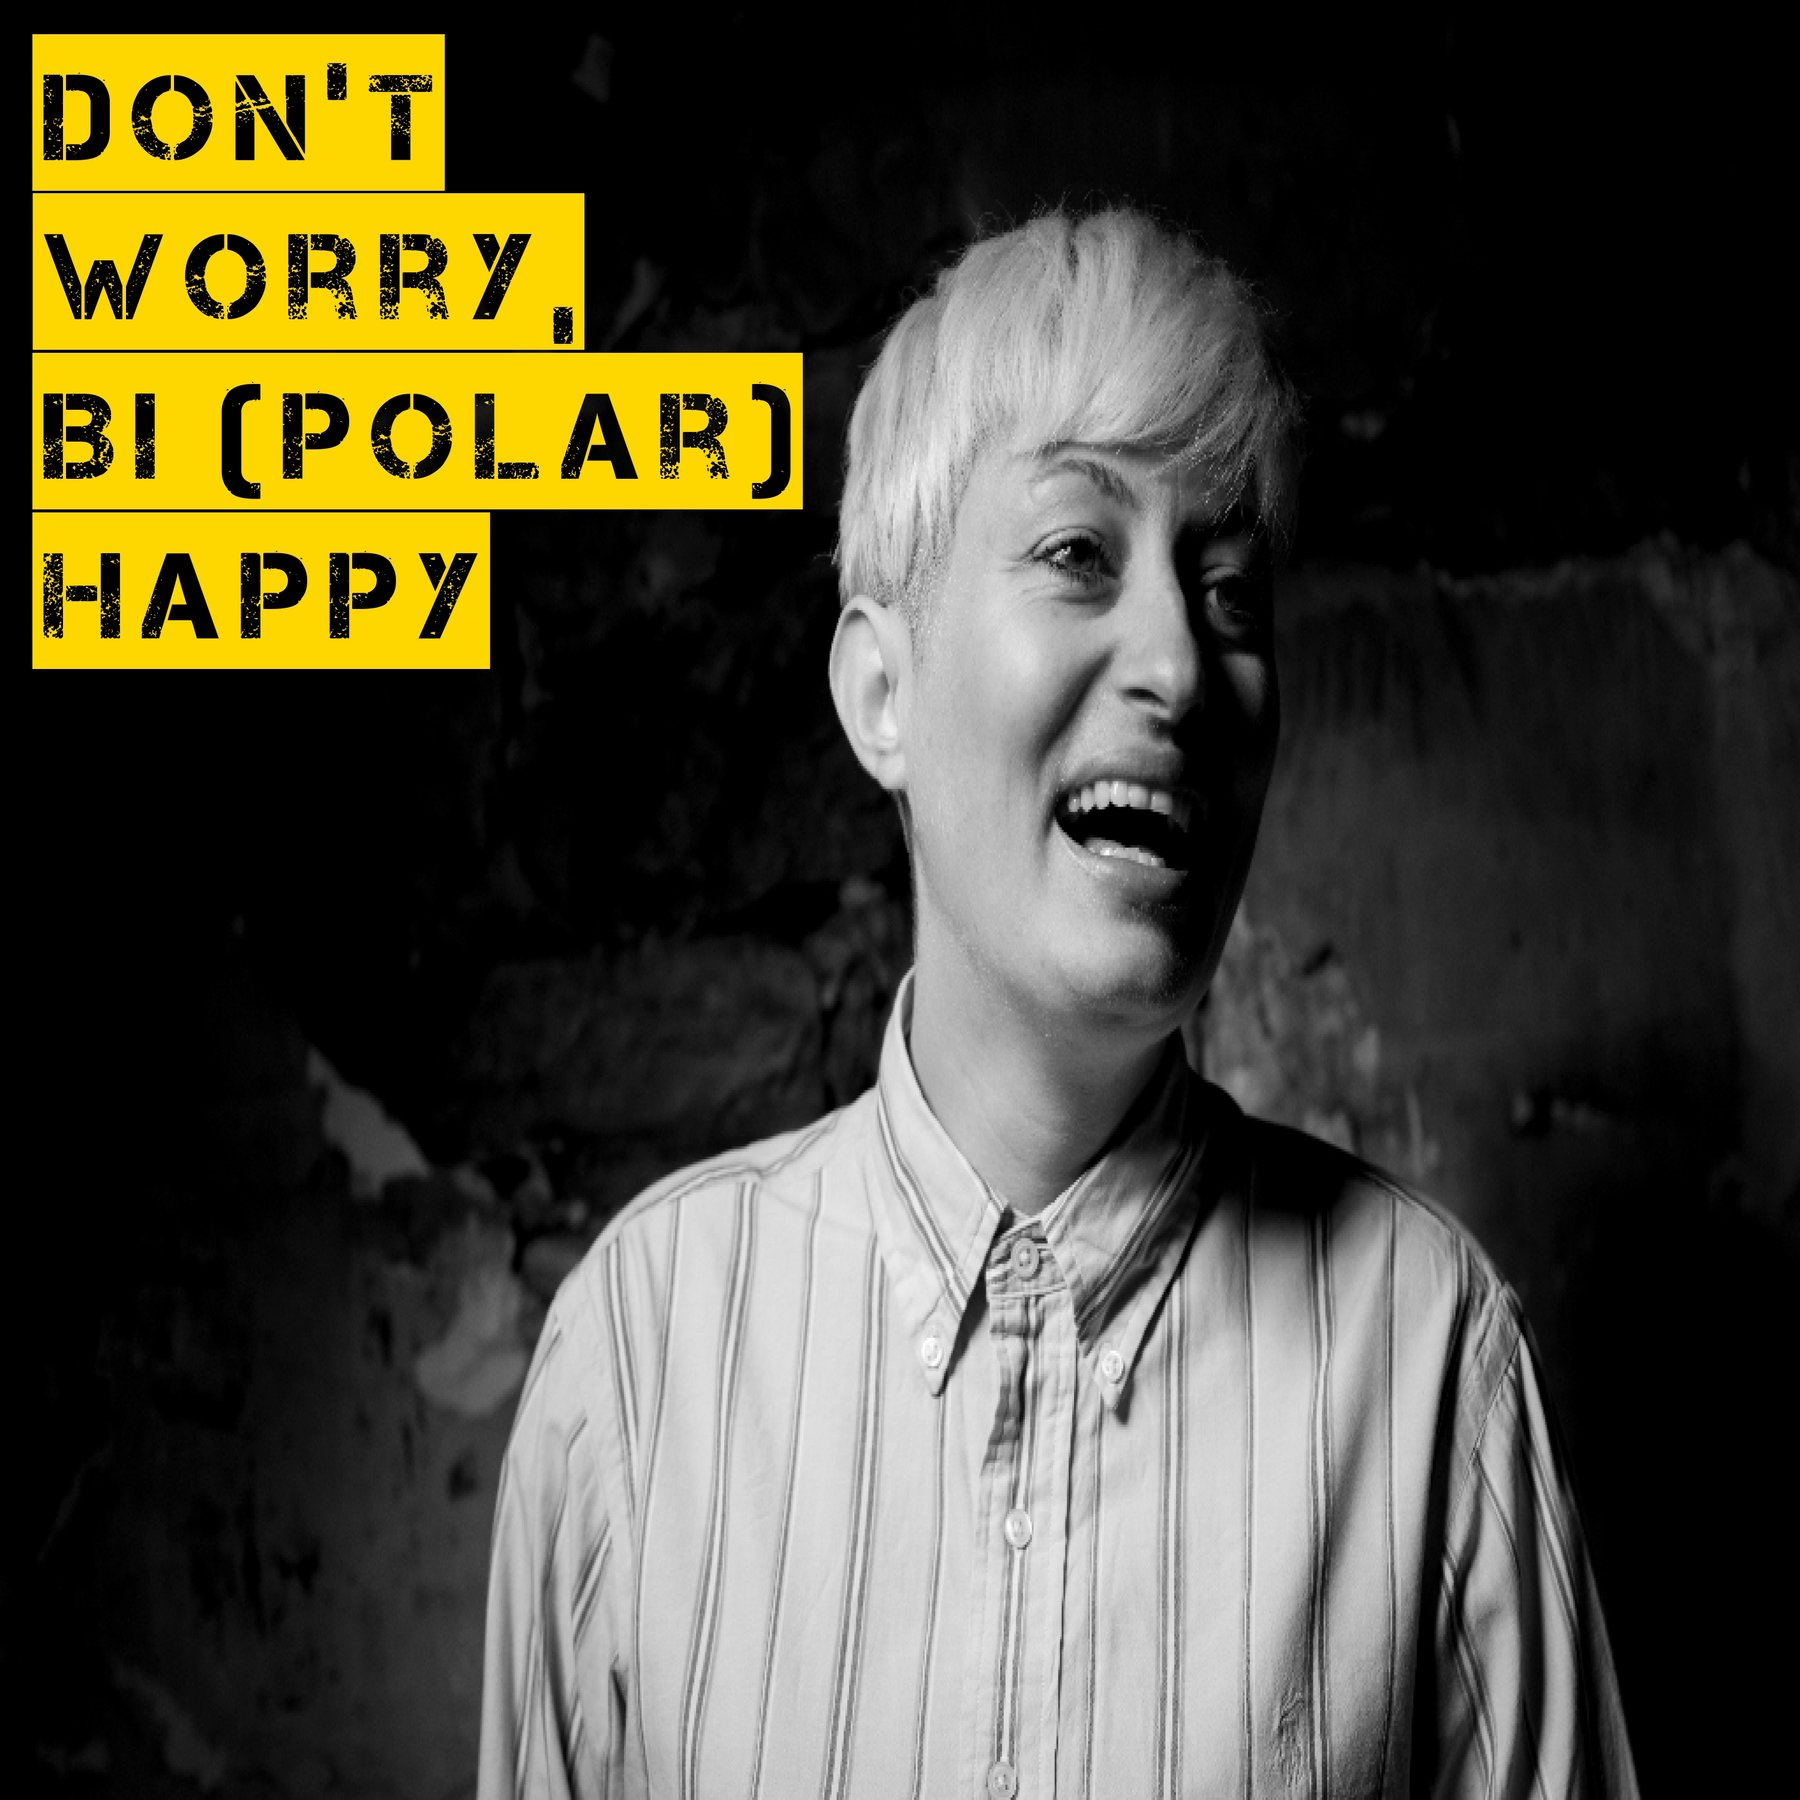 Don't Worry, Bi (polar) Happy